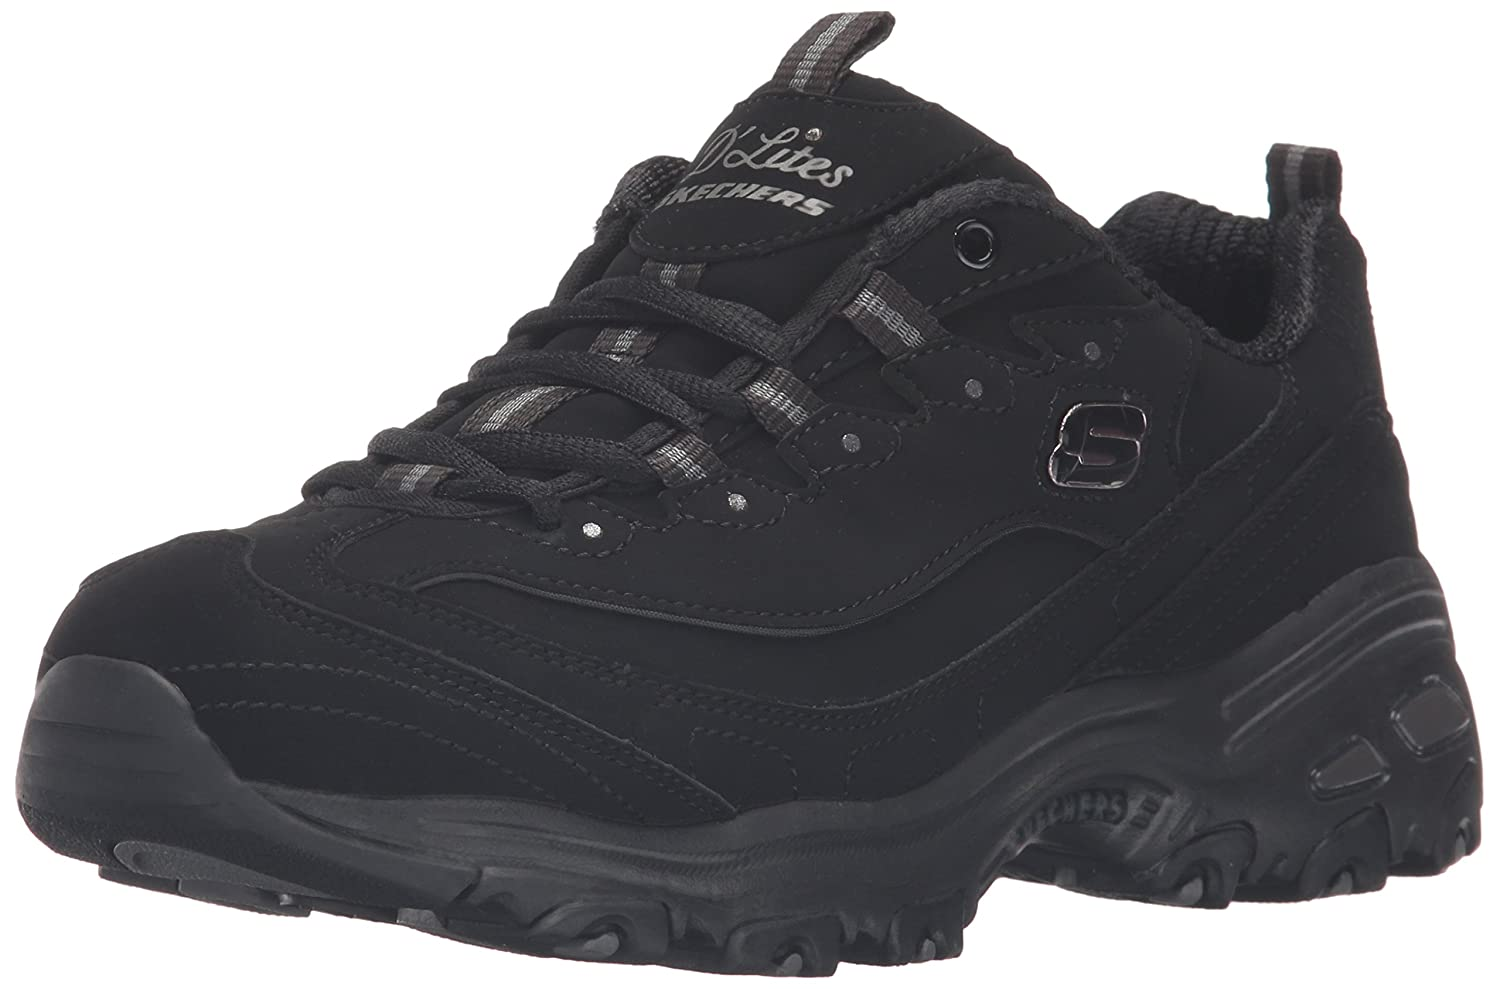 Skechers Women's D'Lites Memory Foam Lace-up Sneaker B01ESD6E9A 5.5 W US|Black/Black